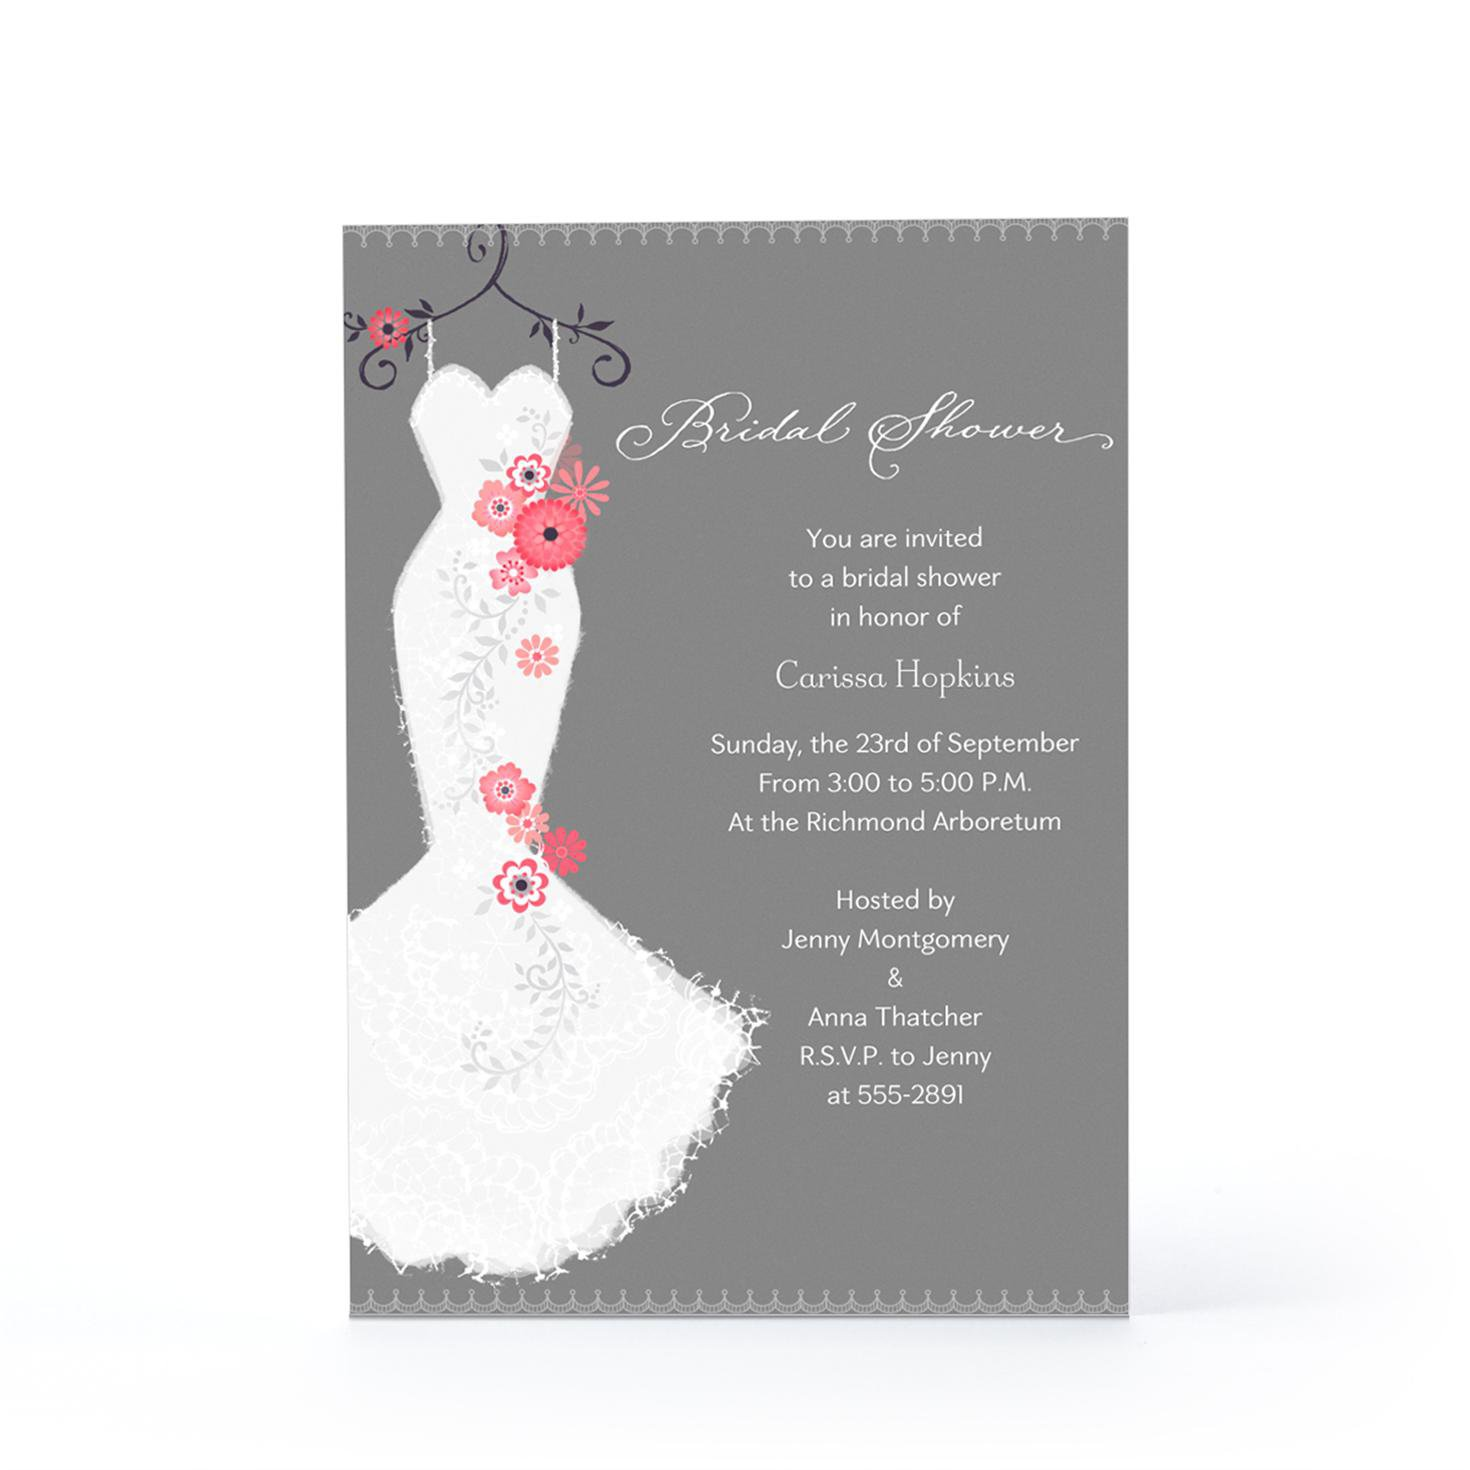 Free bridal shower invitation templates for word gangcraft wedding shower invitations free free kitchen bridal shower bridal shower invitations filmwisefo